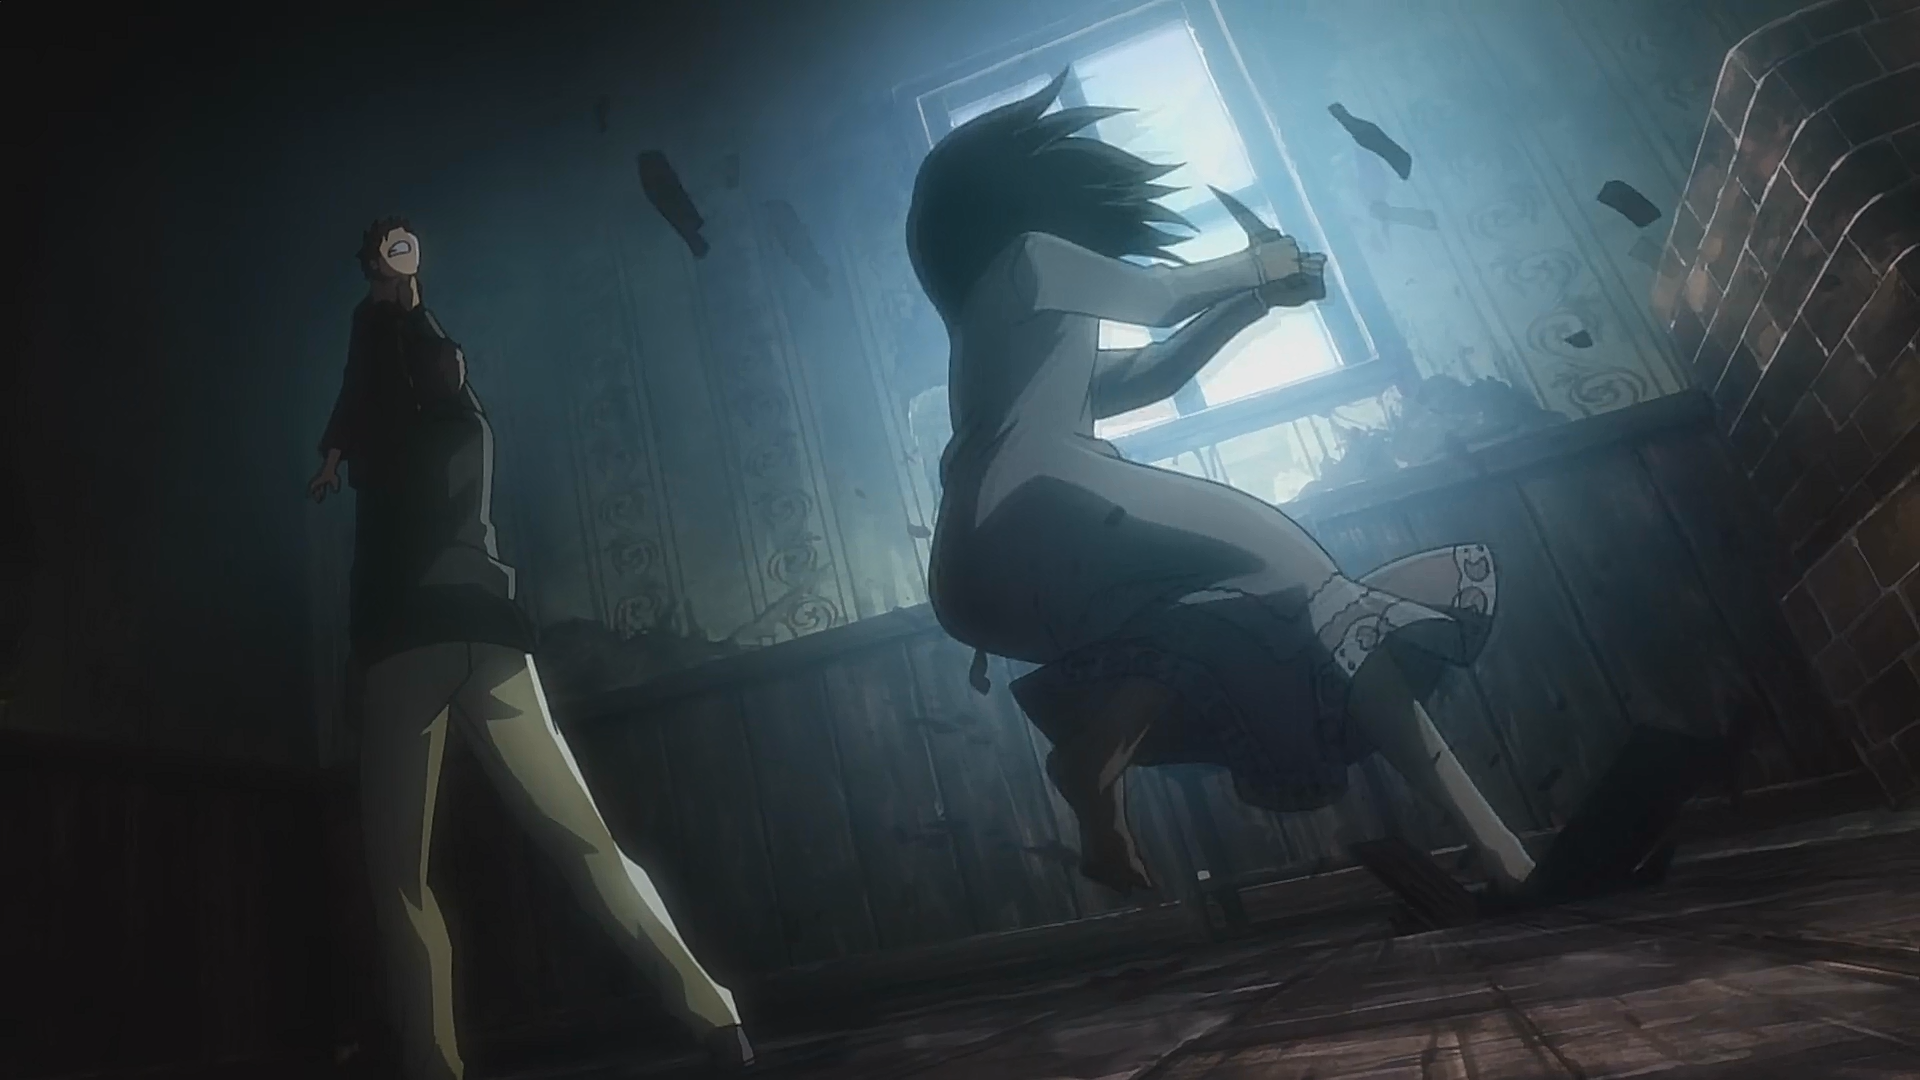 https://static.wikia.nocookie.net/shingekinokyojin/images/8/82/Mikasa_with_the_knife.png/revision/latest?cb=20170802111401